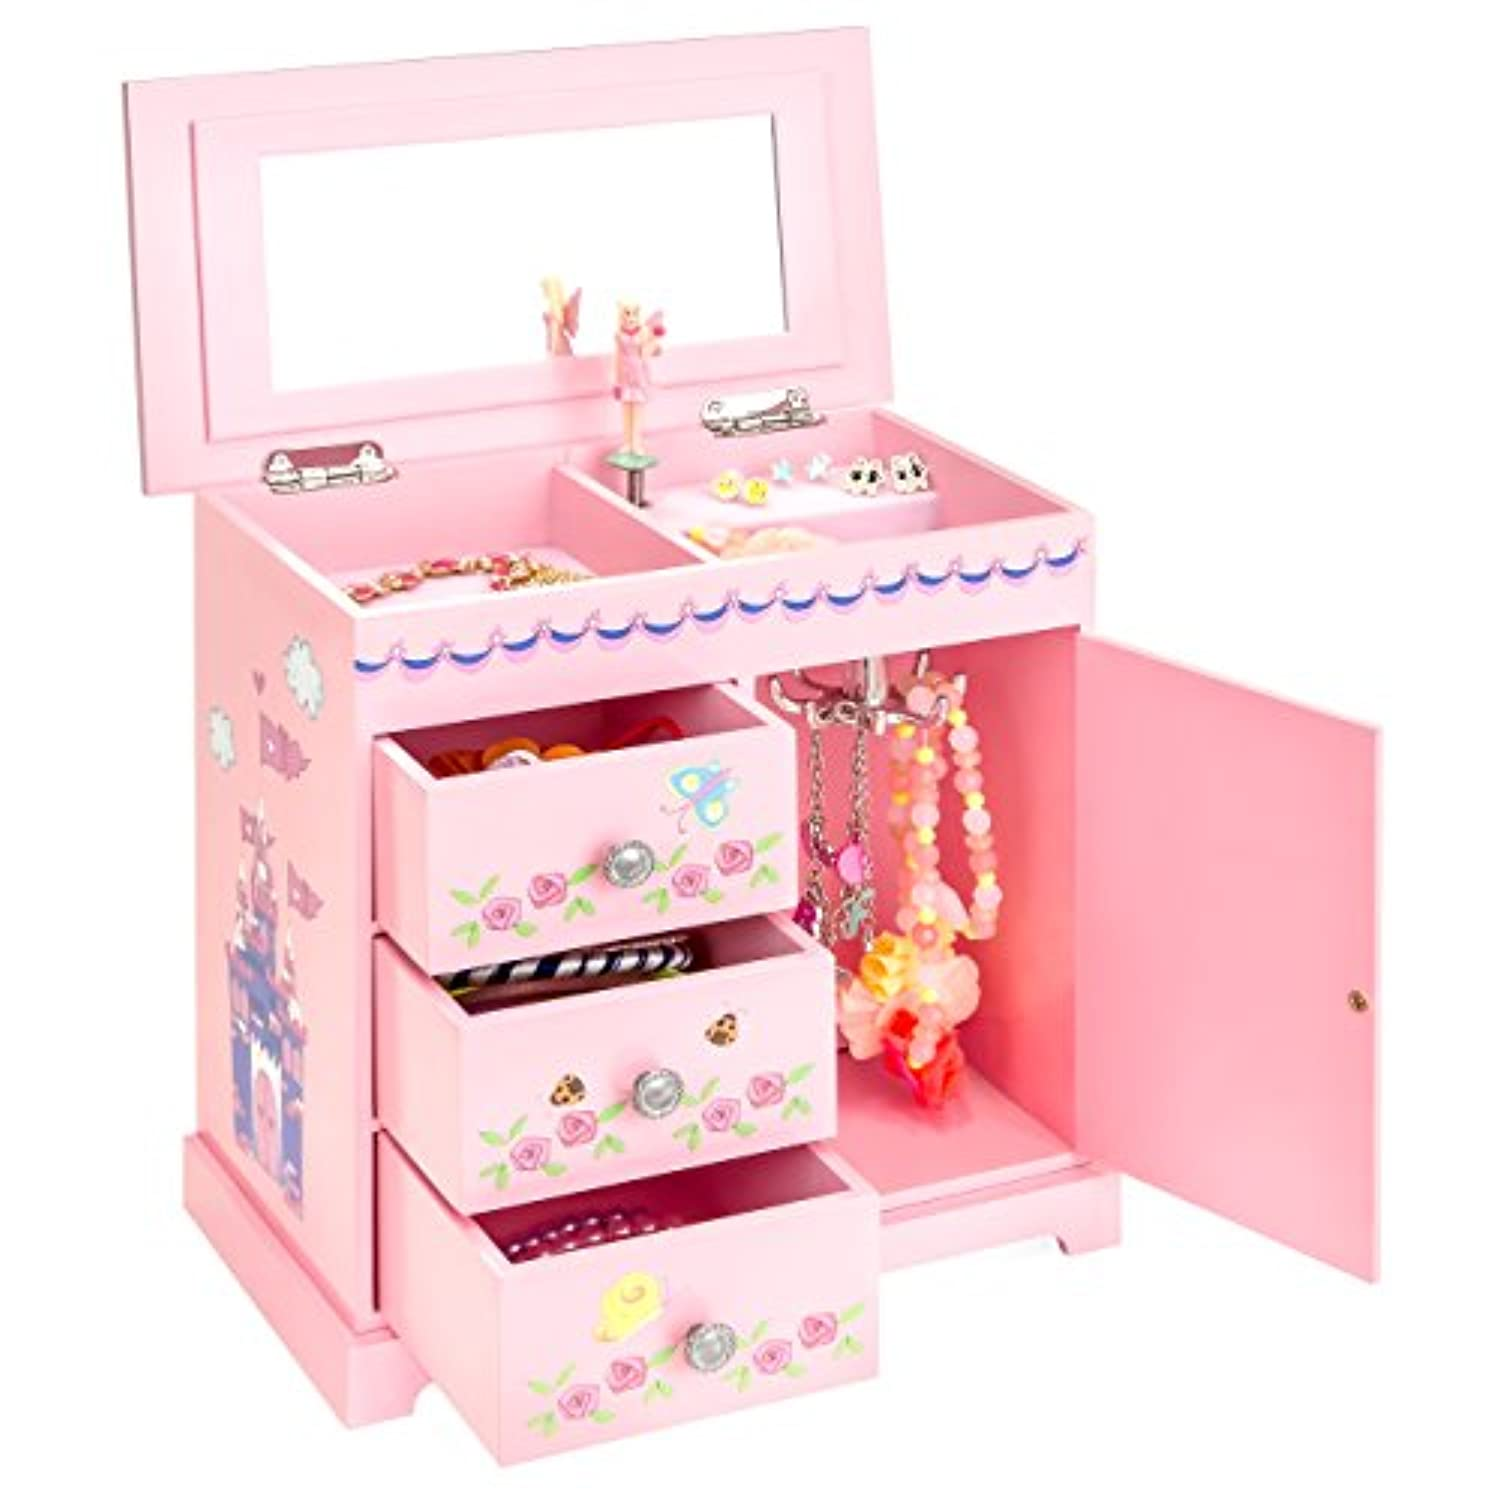 Best Choice Products Wooden Fairy Castle Toy Musical Jewellery Box w/ 3 Pullout Drawers - Pink